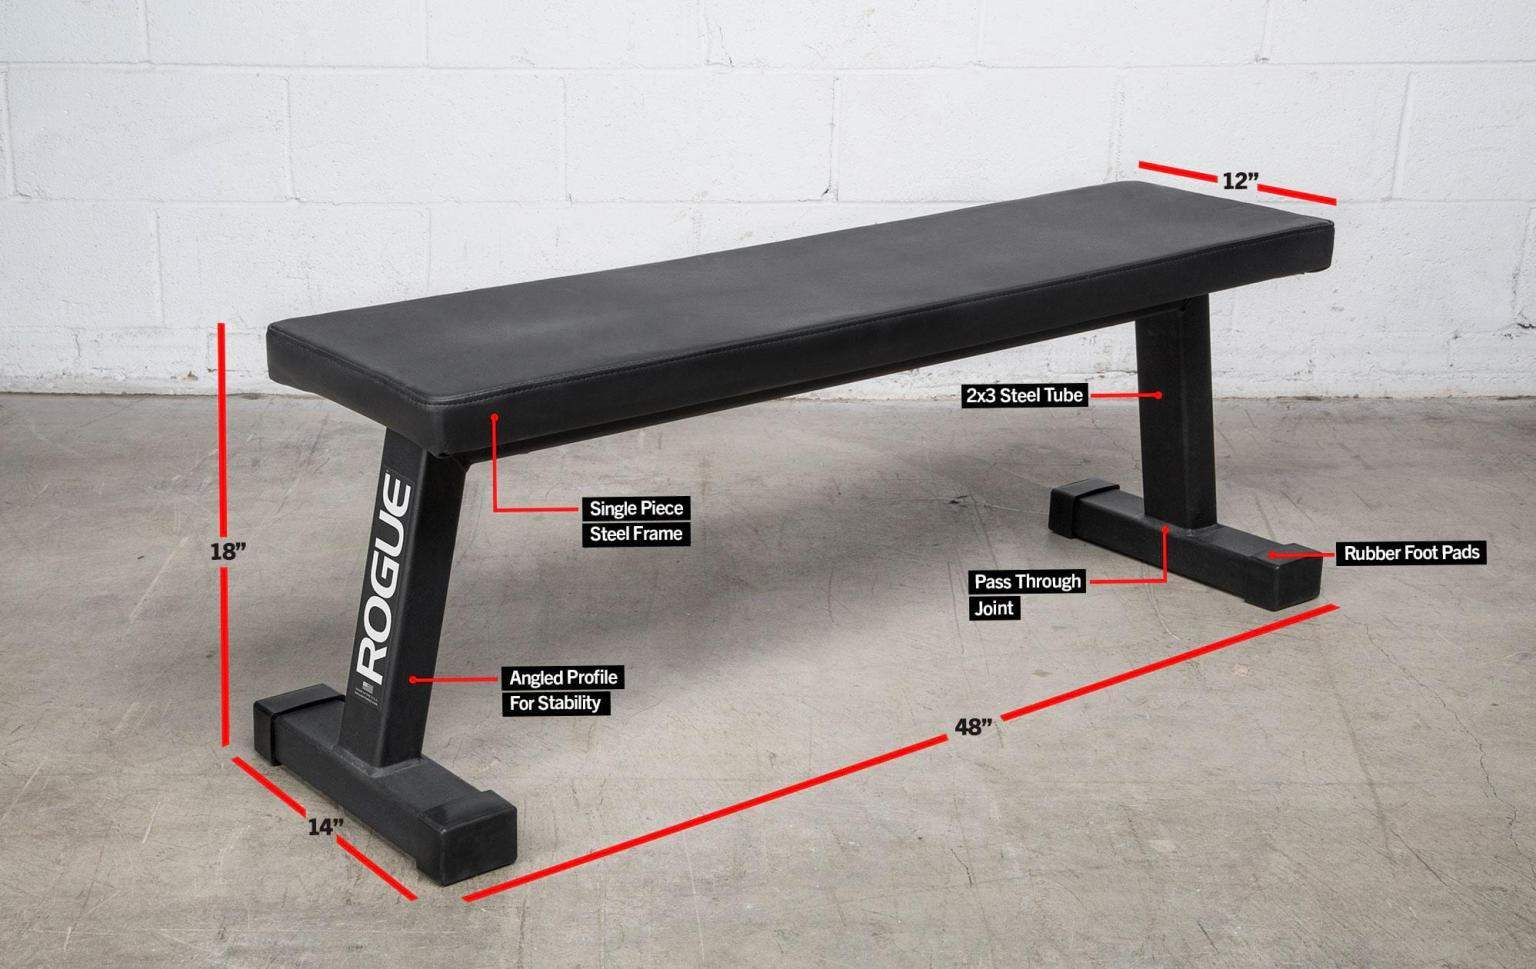 rogue fitness flat utility bench 2.0 with captions